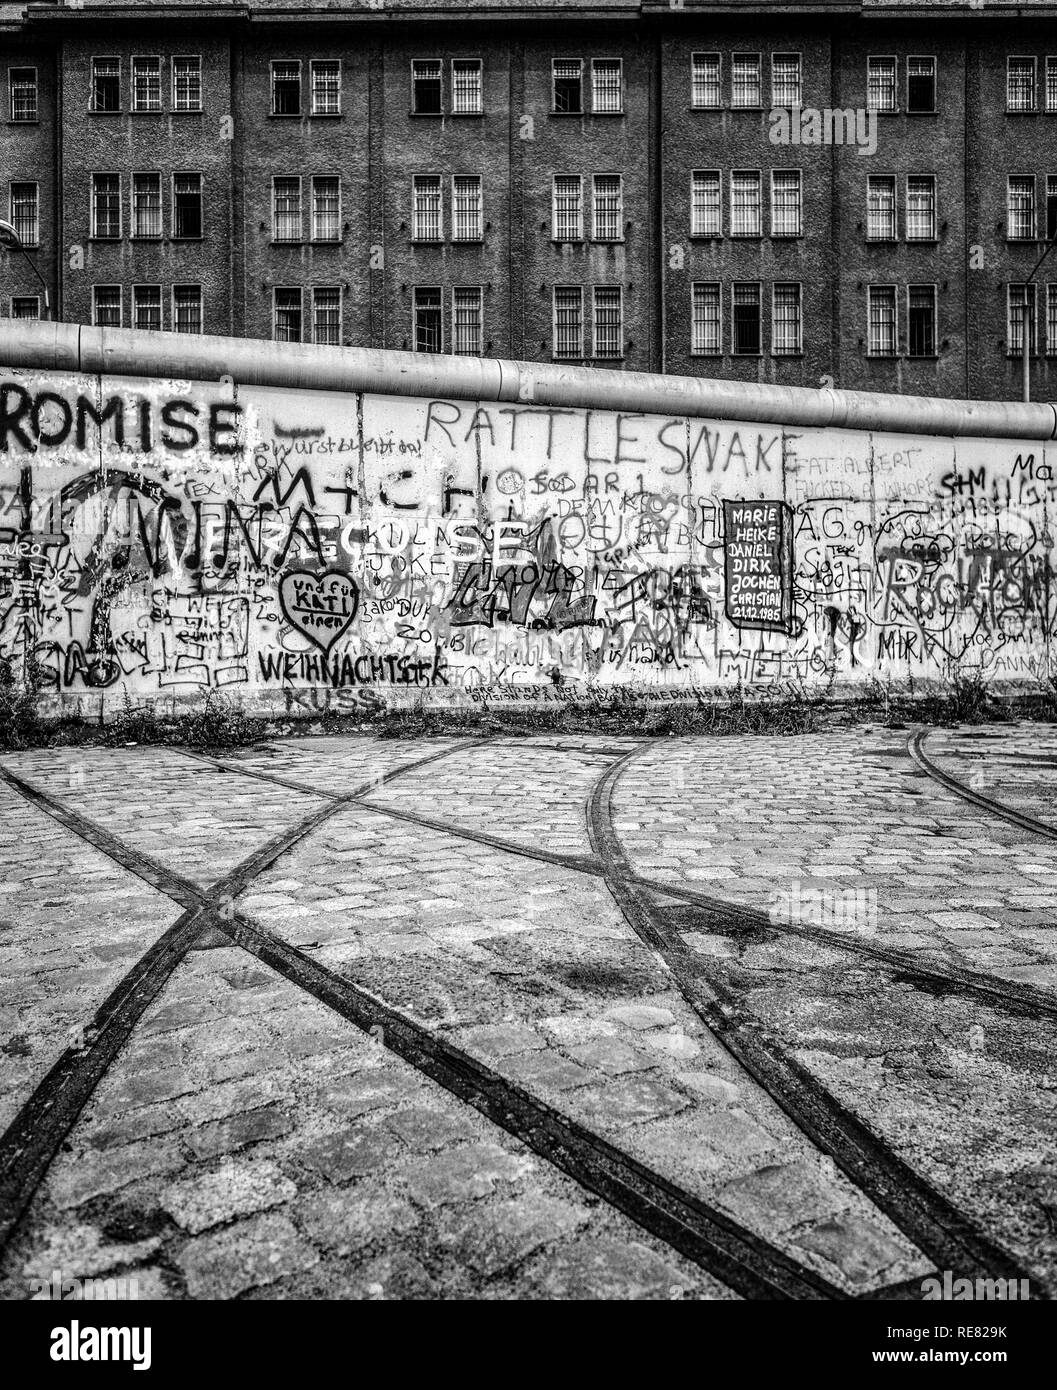 August 1986, Berlin Wall graffitis, tram track ending into wall, East Berlin building, West Berlin side, Germany, Europe, - Stock Image